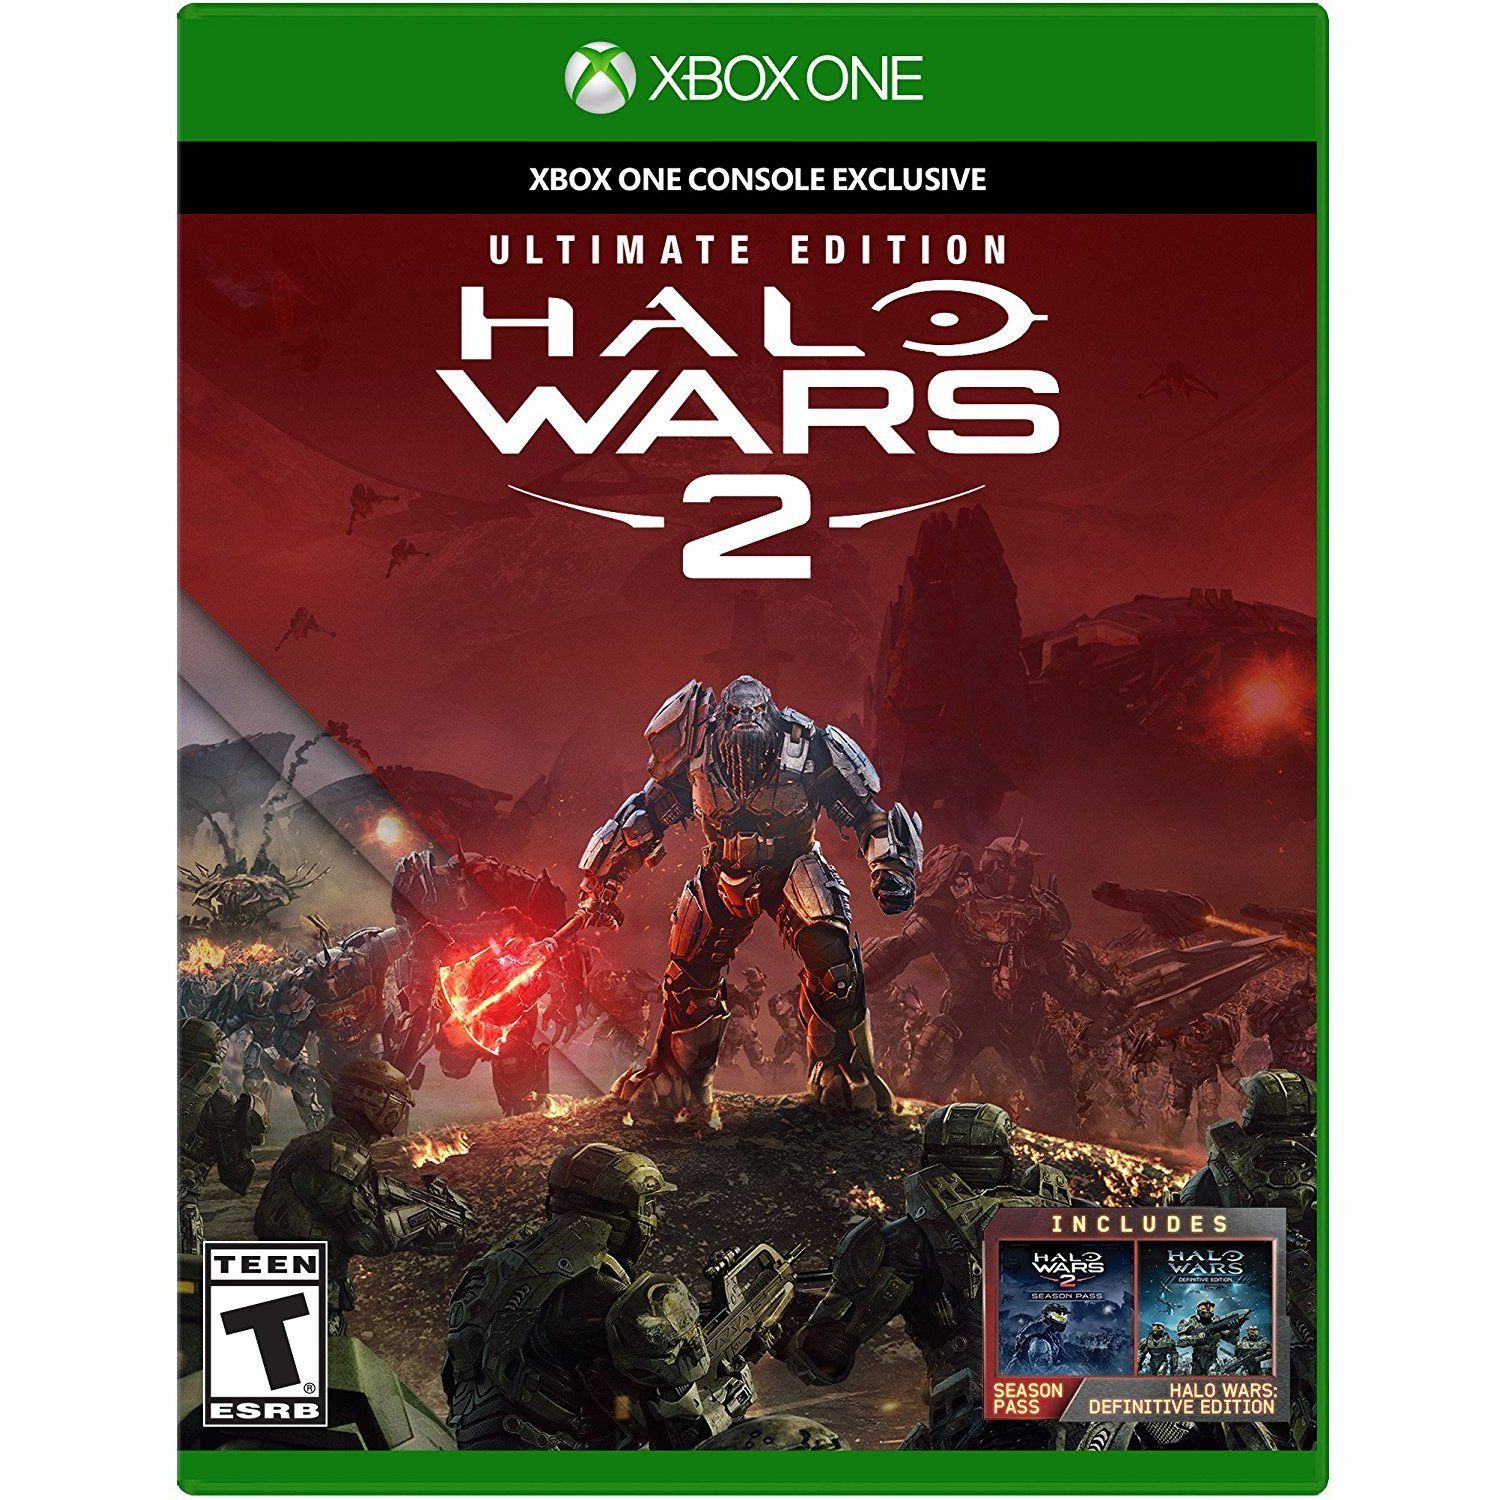 Halo Wars 2 Ultimate Edition Xbox One Xbox one s 1tb